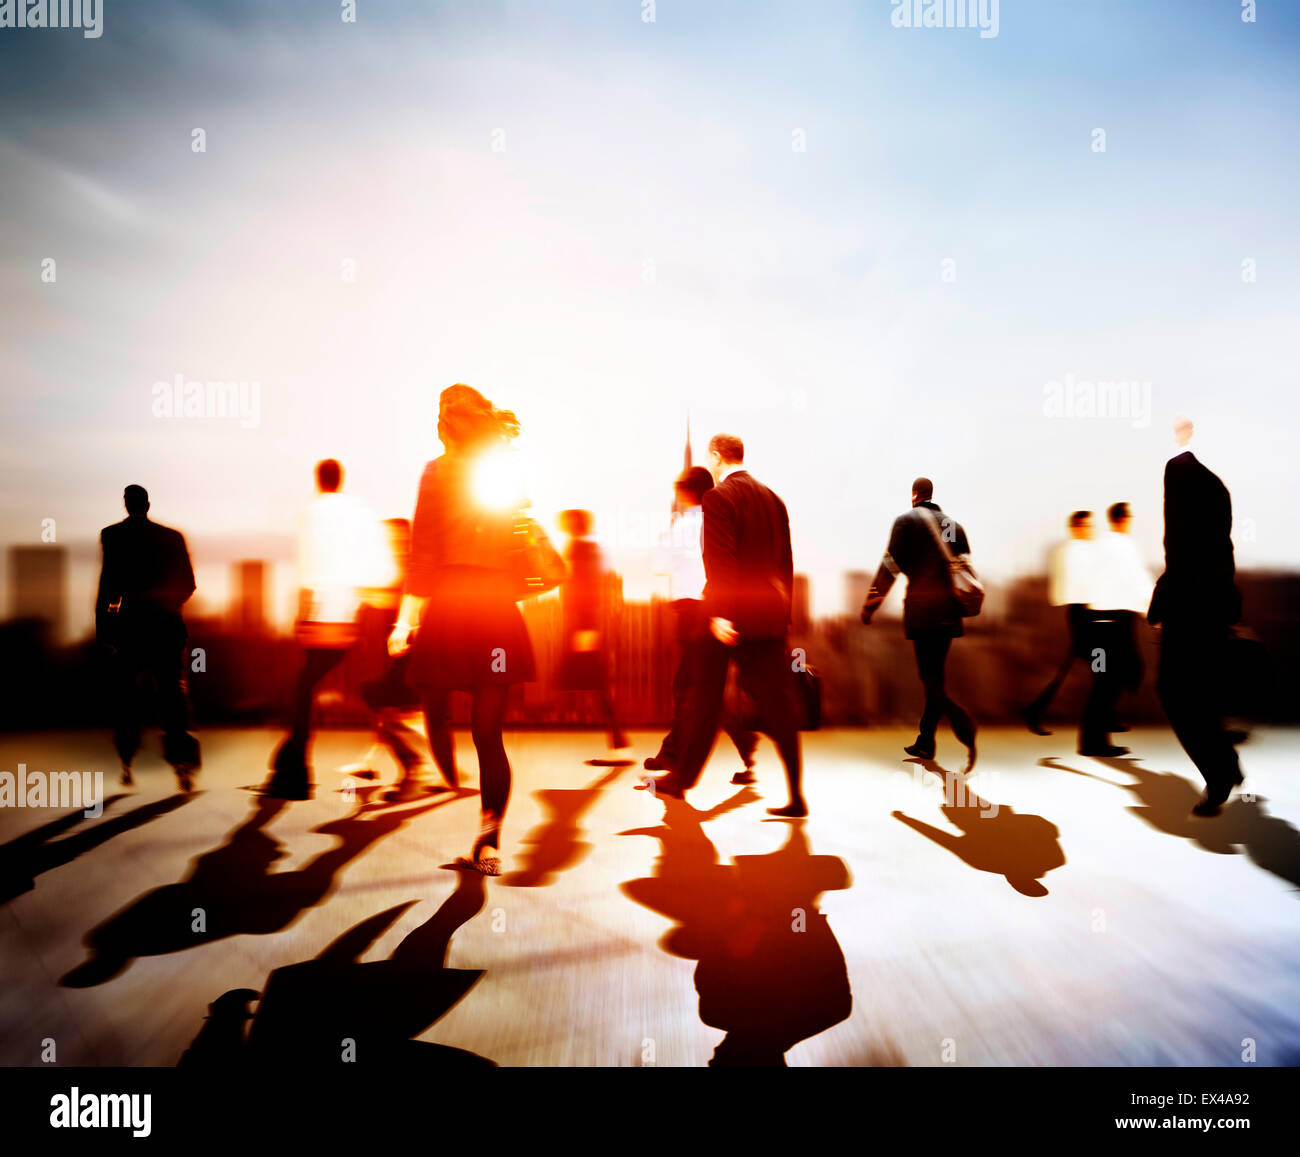 Business People Rush Hour Walking Commuting City Concept - Stock Image